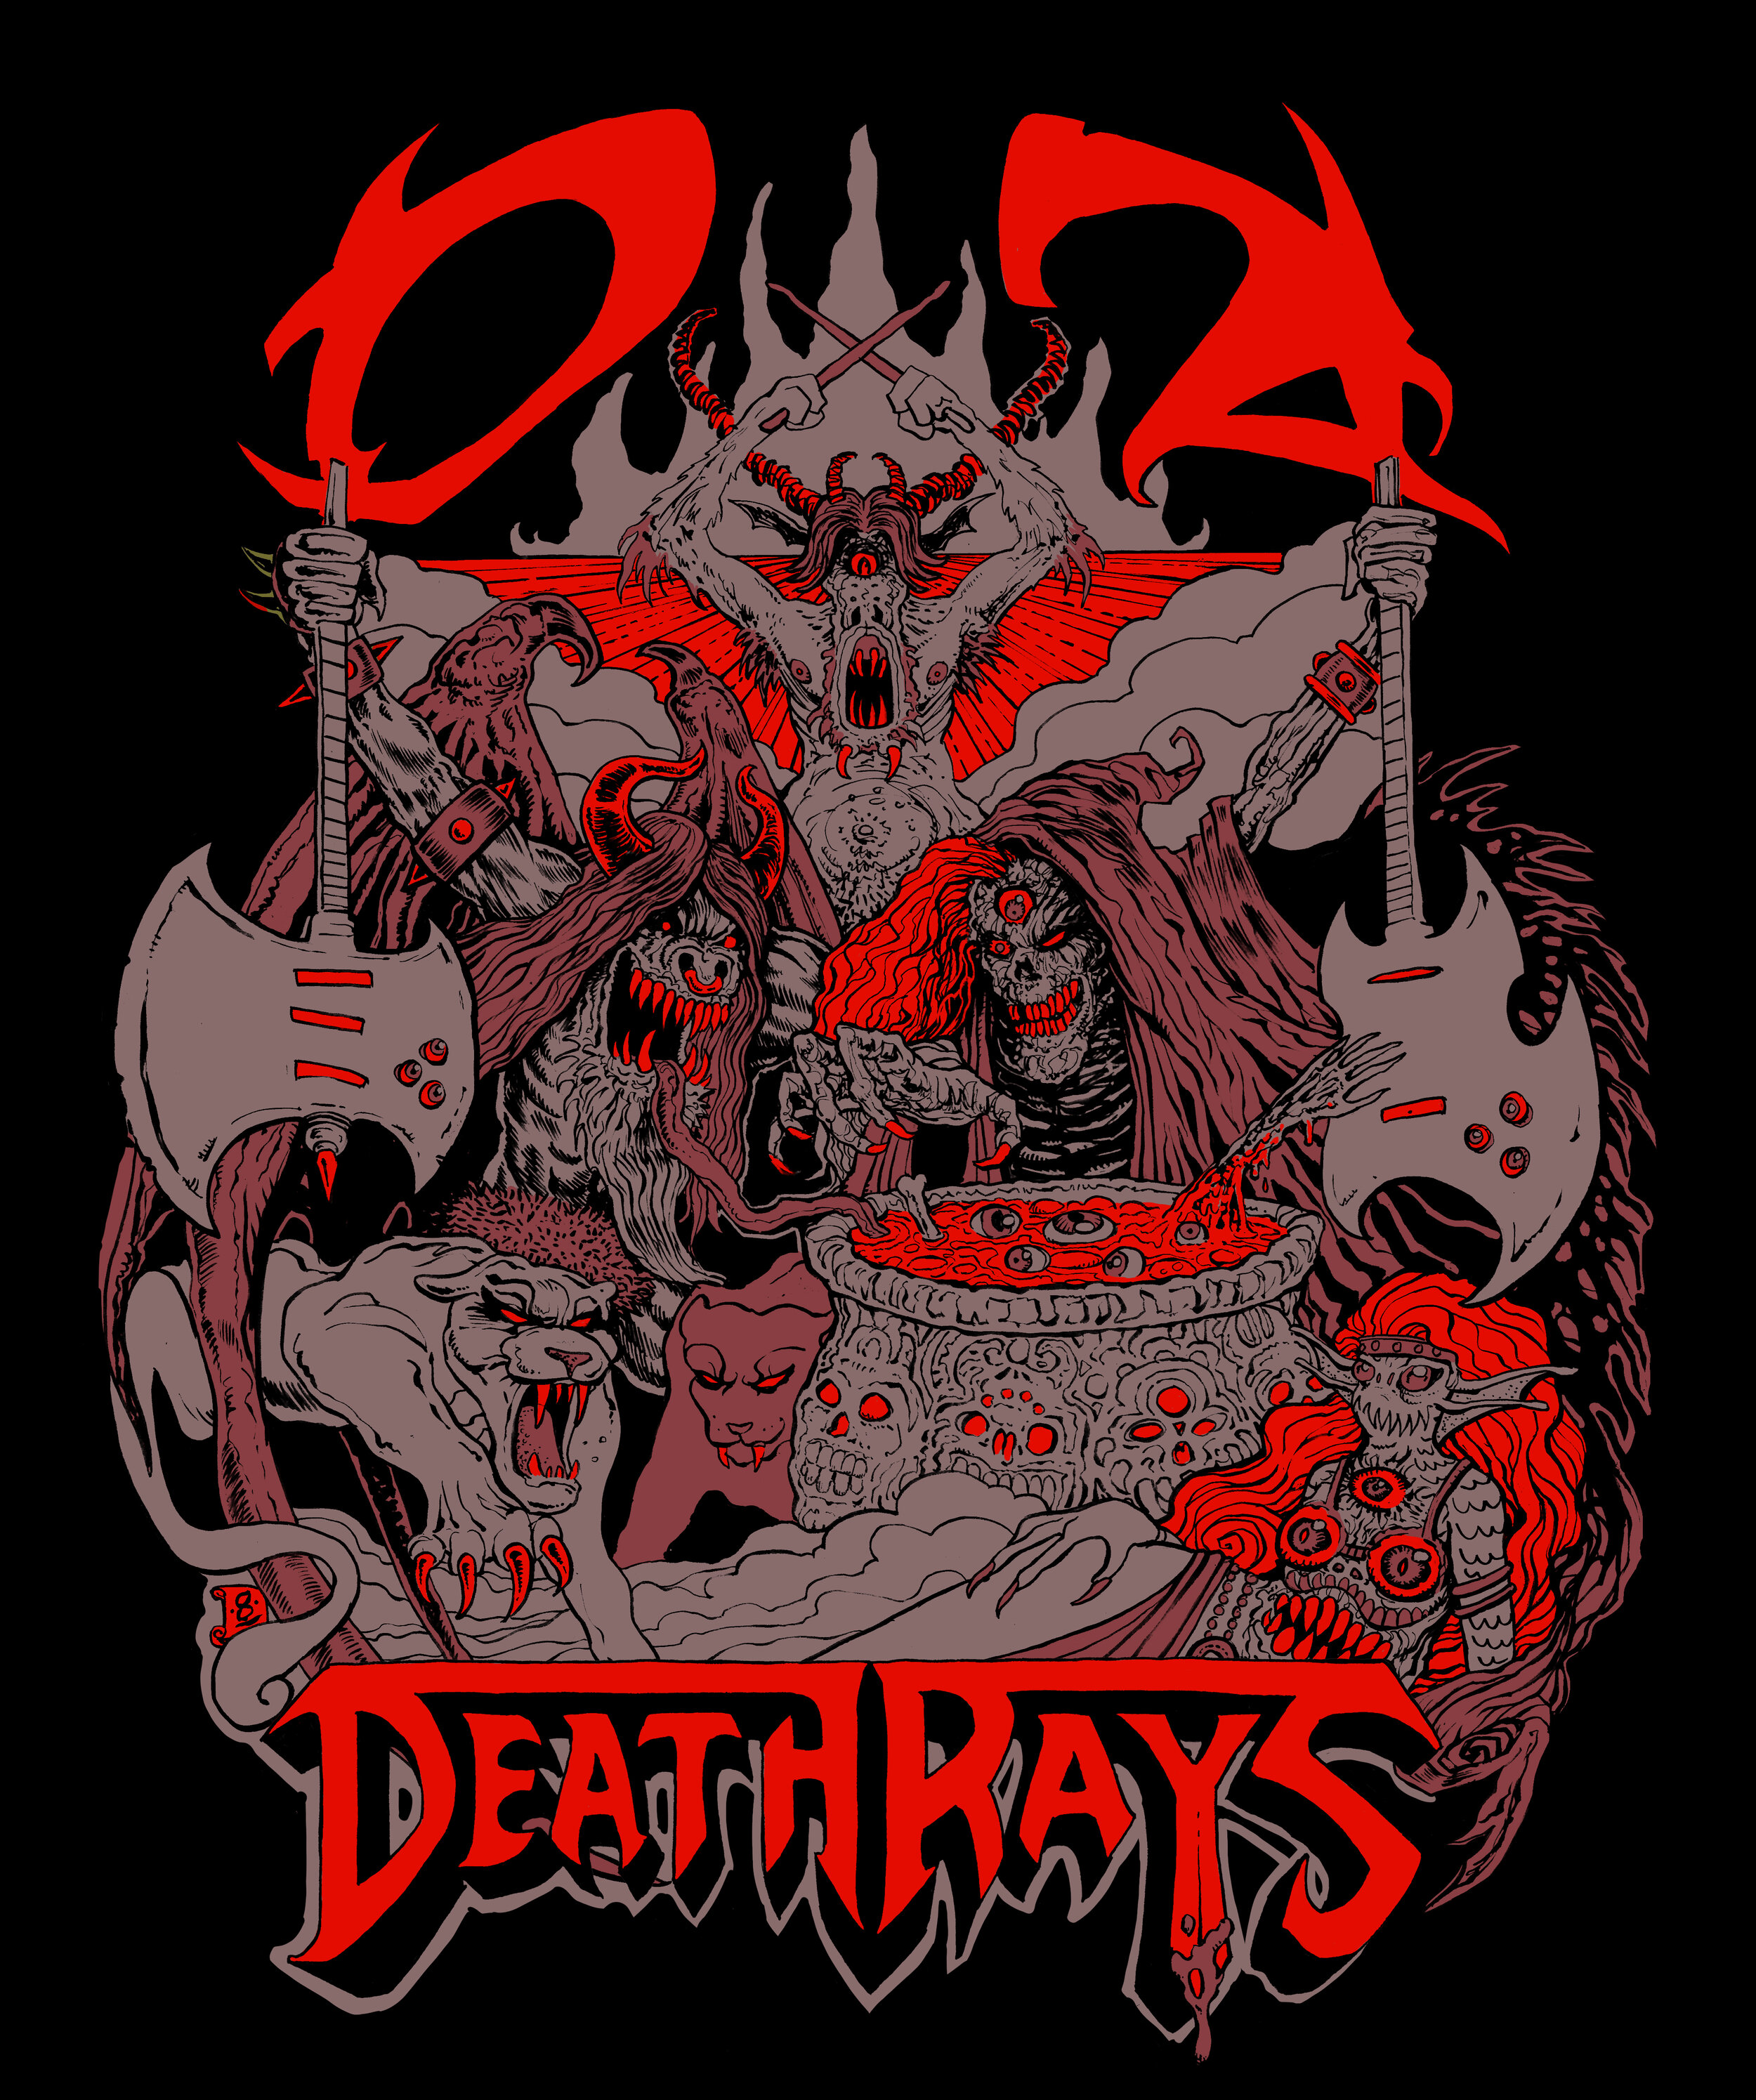 DZ Deathrays  shirt/poster design (2019)  Ink (with digital colours) on Bristol